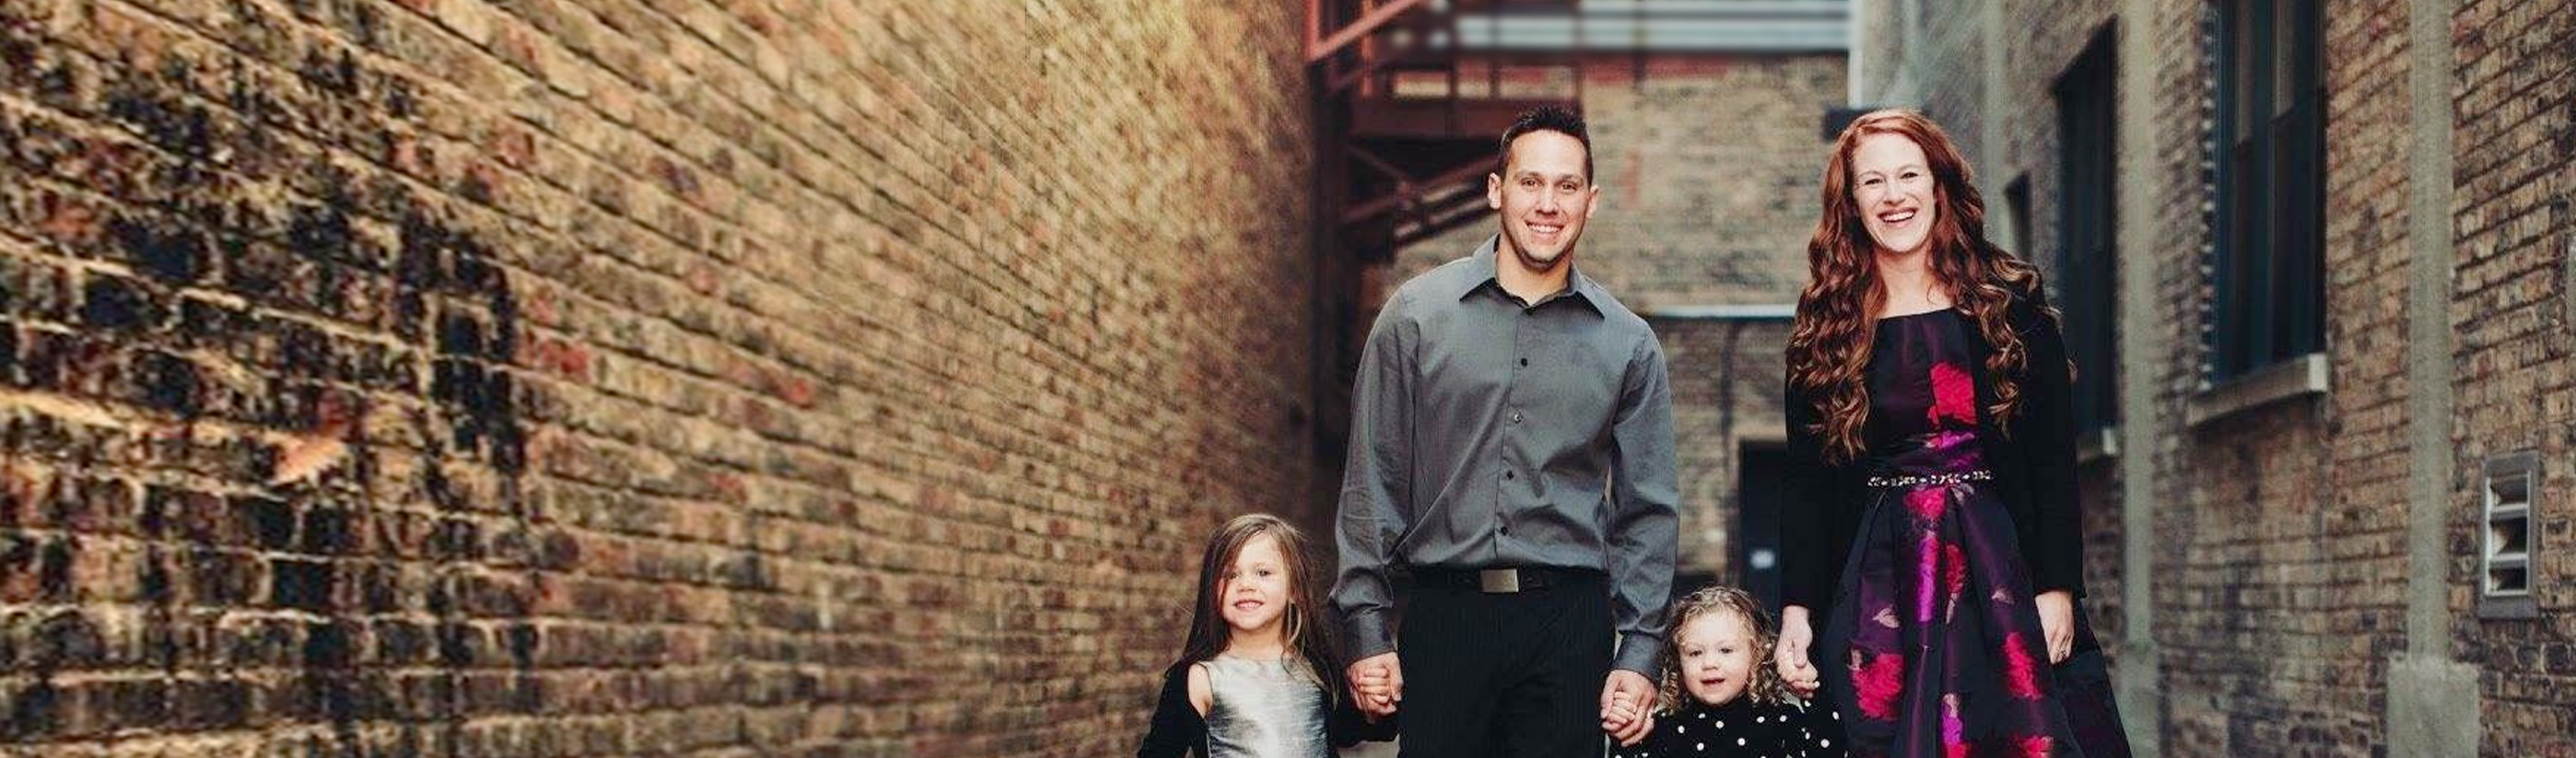 The Ledvinas, an RMHC family, posed holding hands in a picturesque brick-lined alley